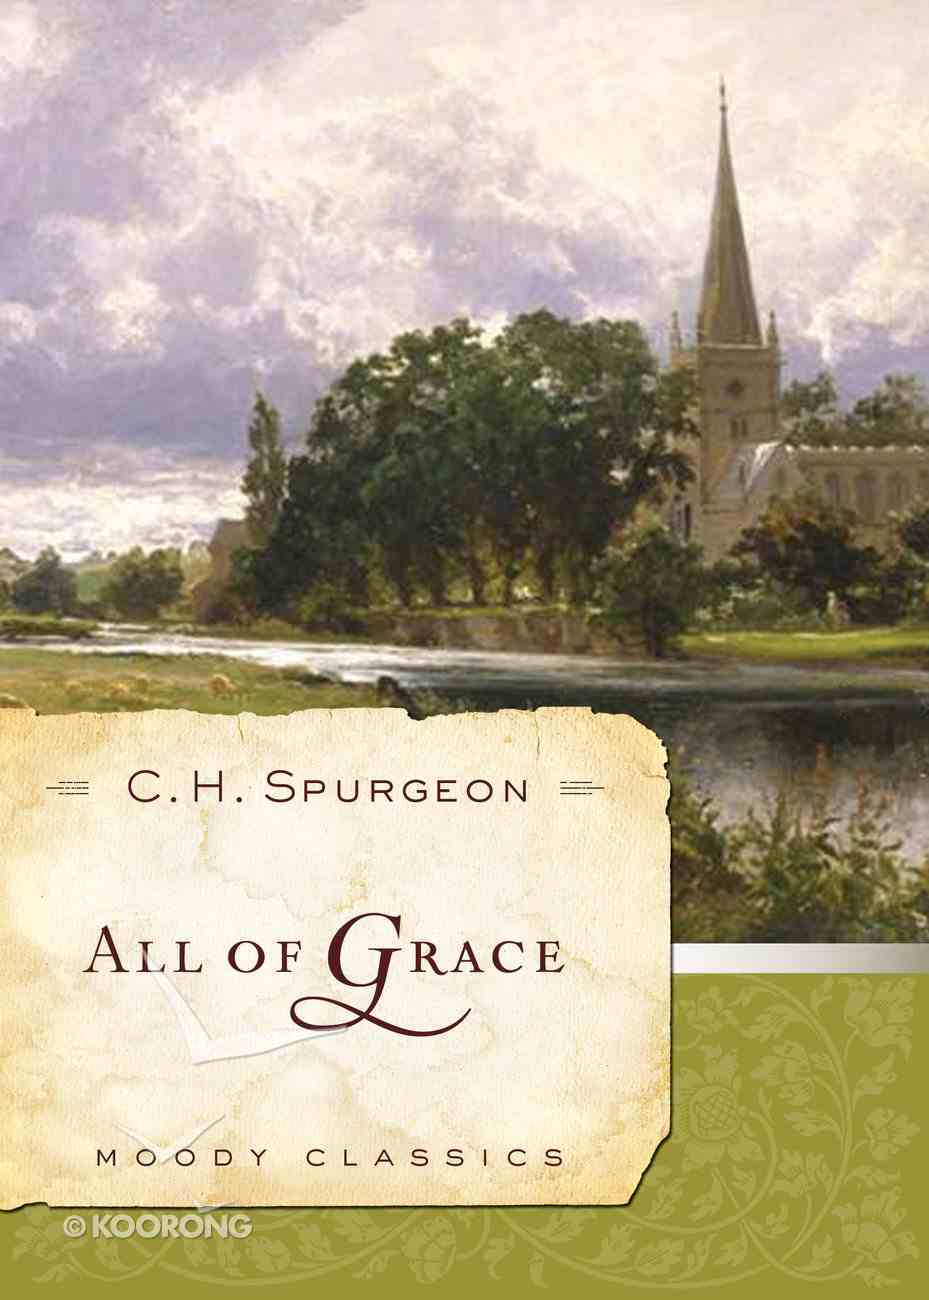 All of Grace (Moody Classic Series) eBook